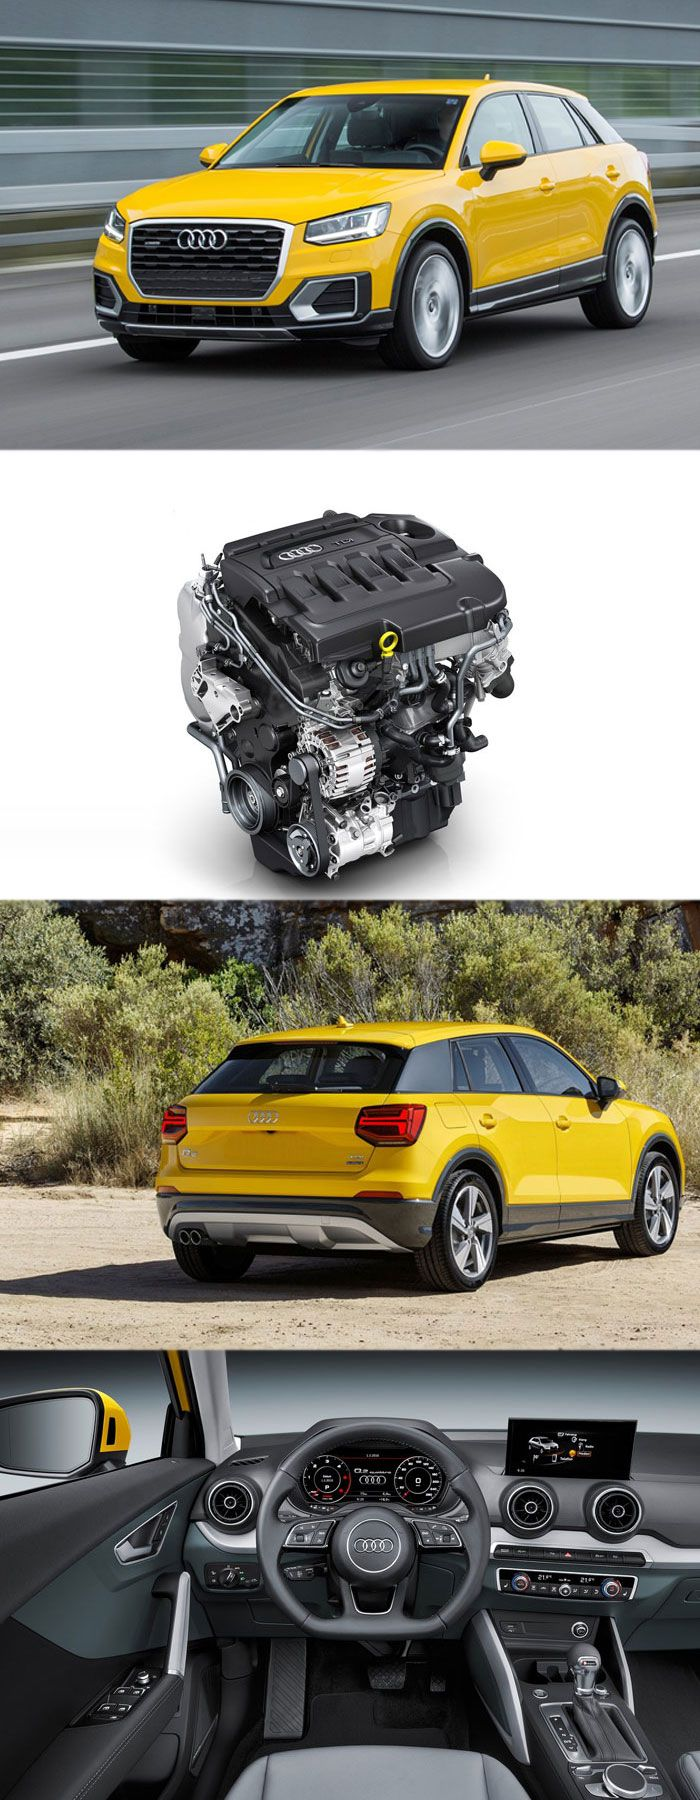 Essential Engine Technologies for New Audi Q2 Crossover Get more details at: http://bestenginesinuk.kinja.com/essential-engine-technologies-for-new-audi-q2-crossover-1783569382